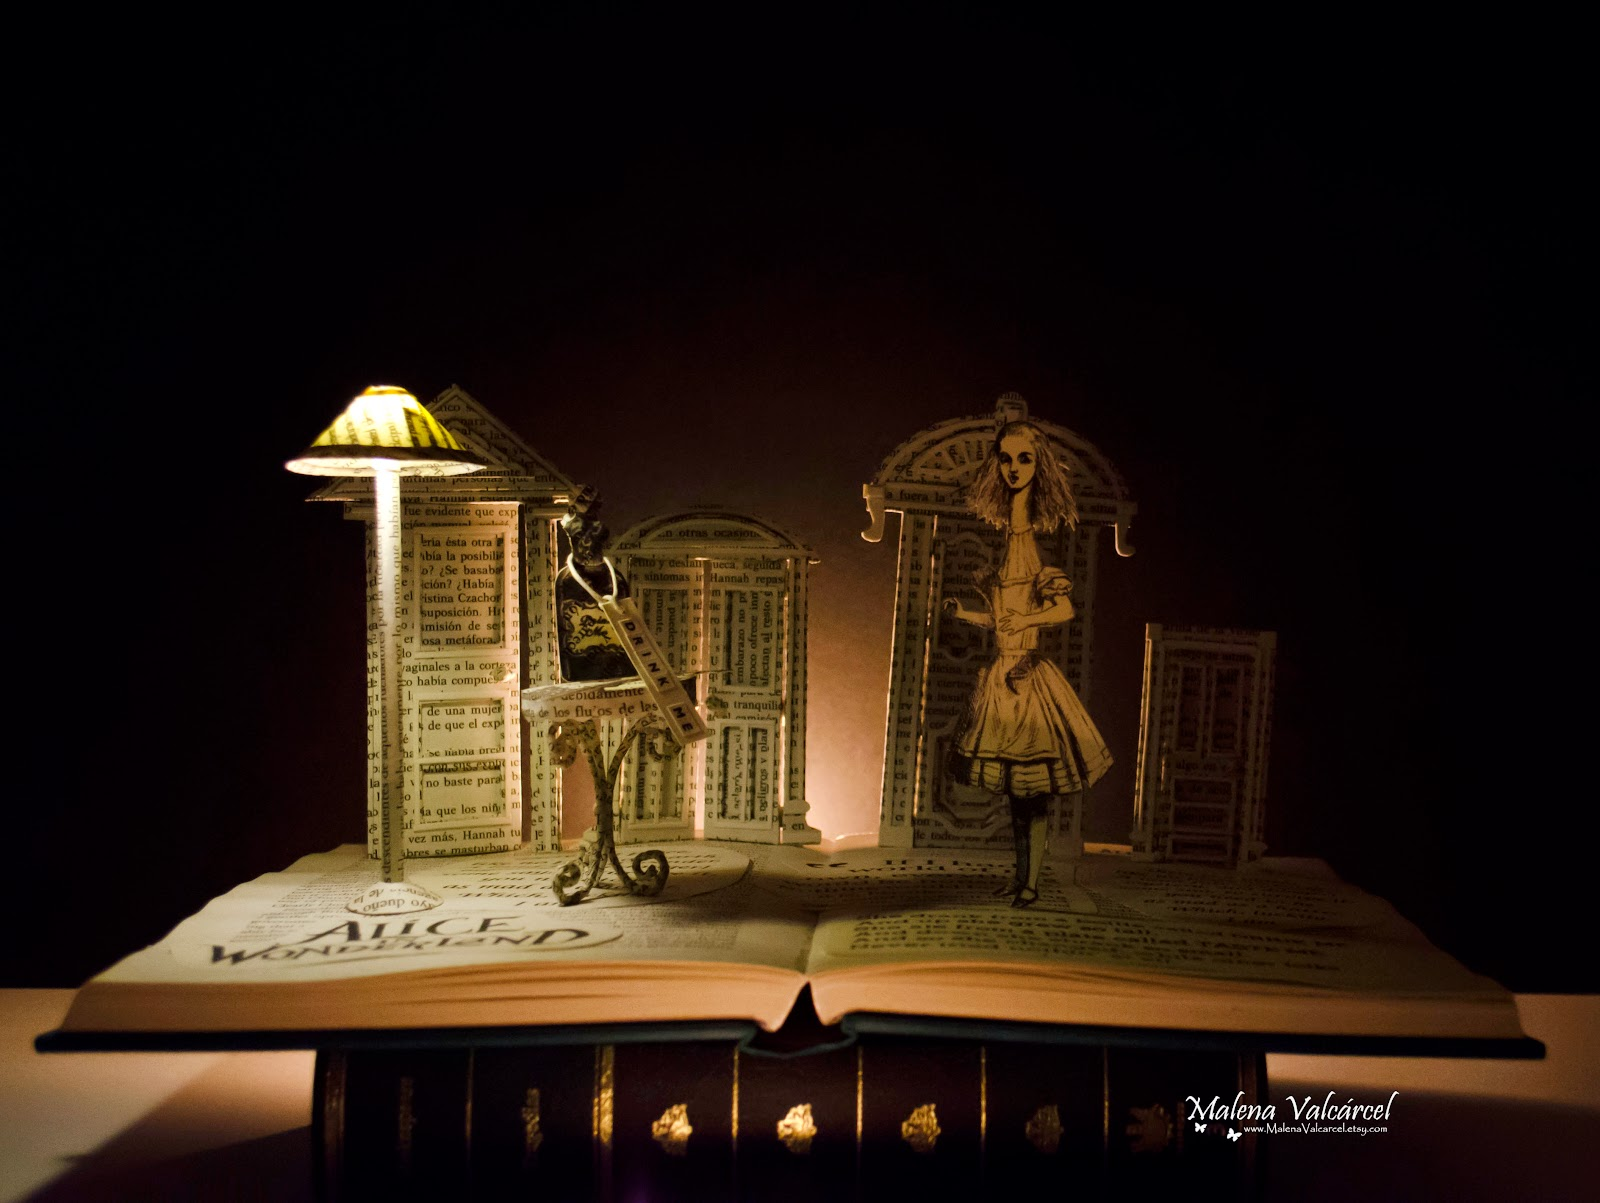 alice-in-wonderland-book-sculpture